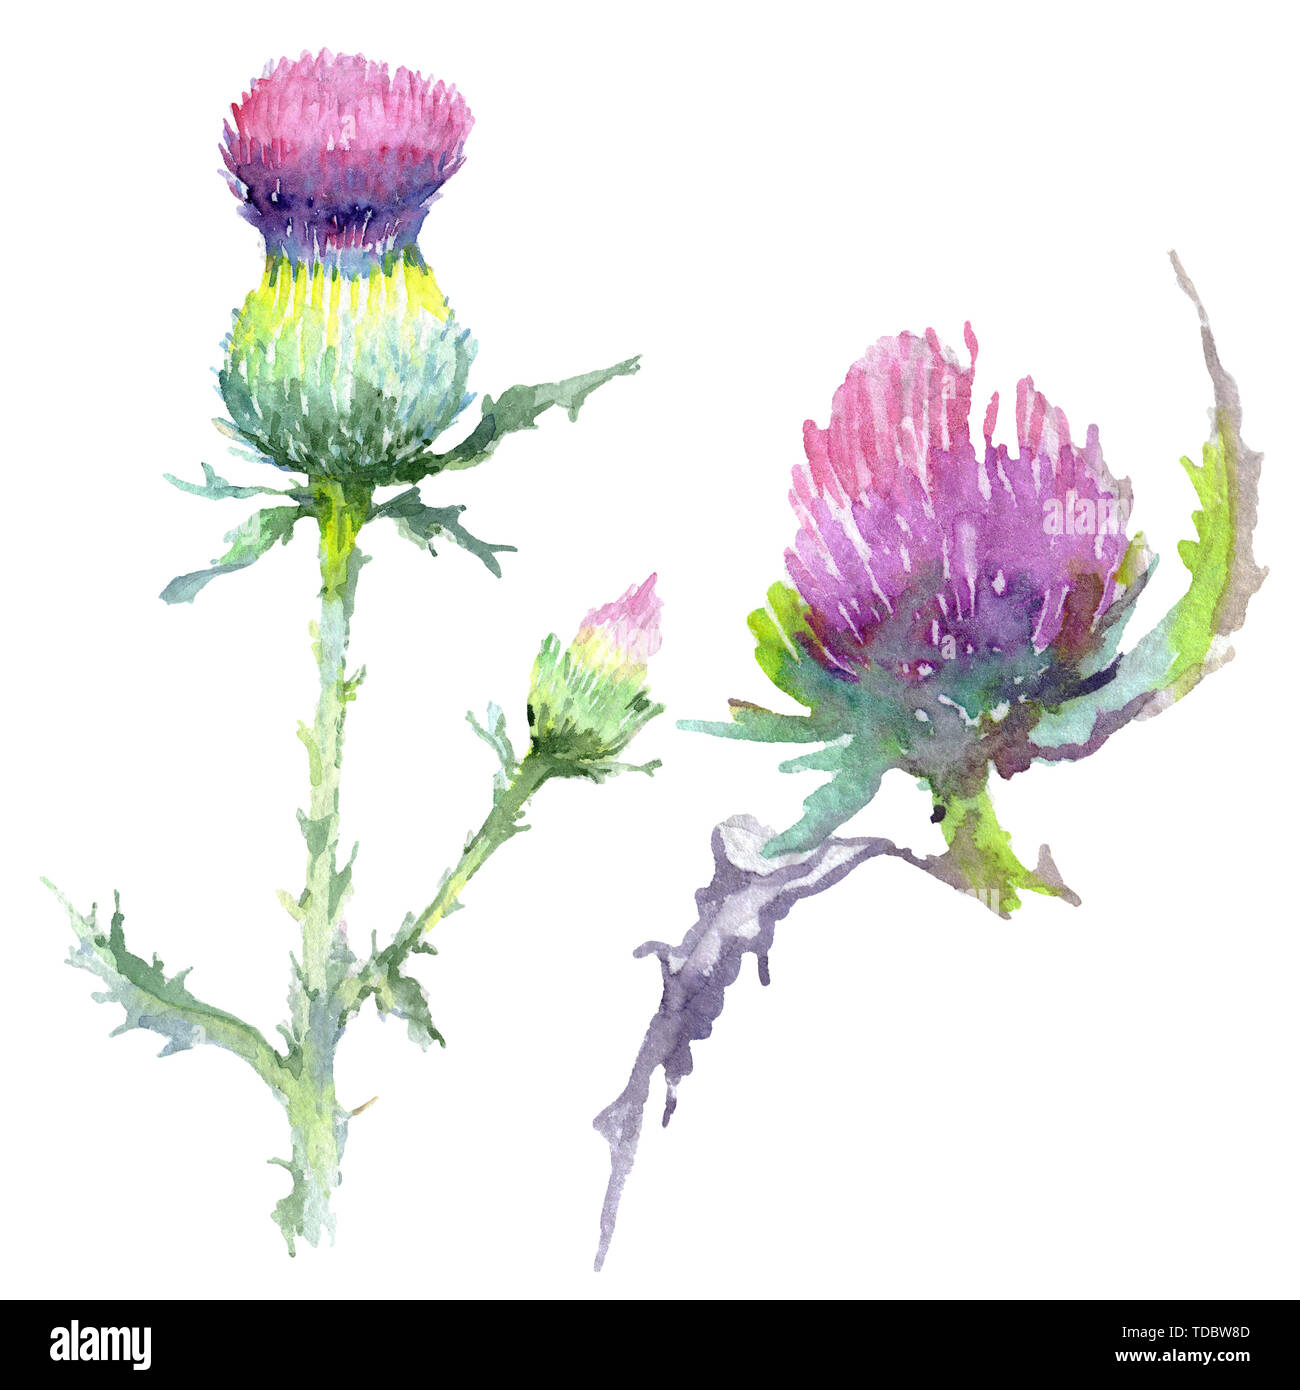 fcbdb4d48 Pink thistle floral botanical flowers. Wild spring leaf wildflower.  Watercolor background illustration set. Watercolour drawing fashion  aquarelle. Iso